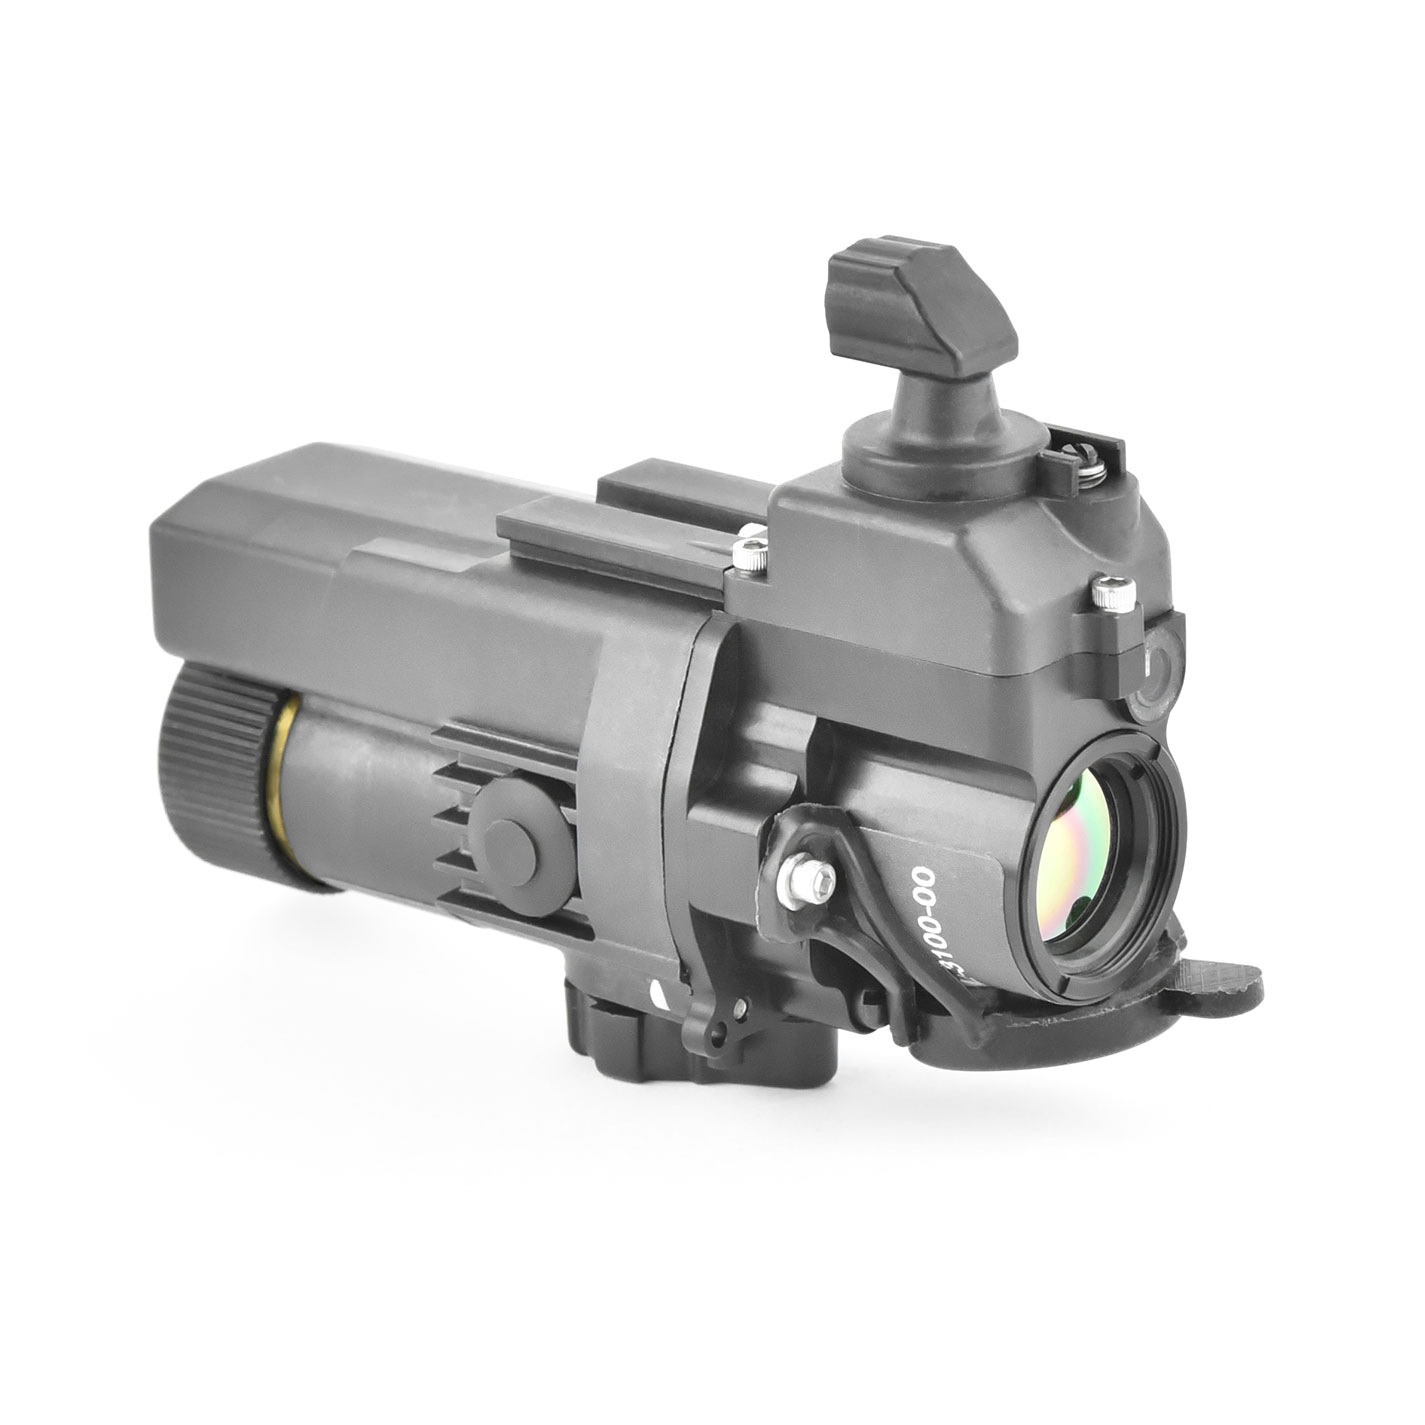 COTI™ Clip-On Thermal Imager